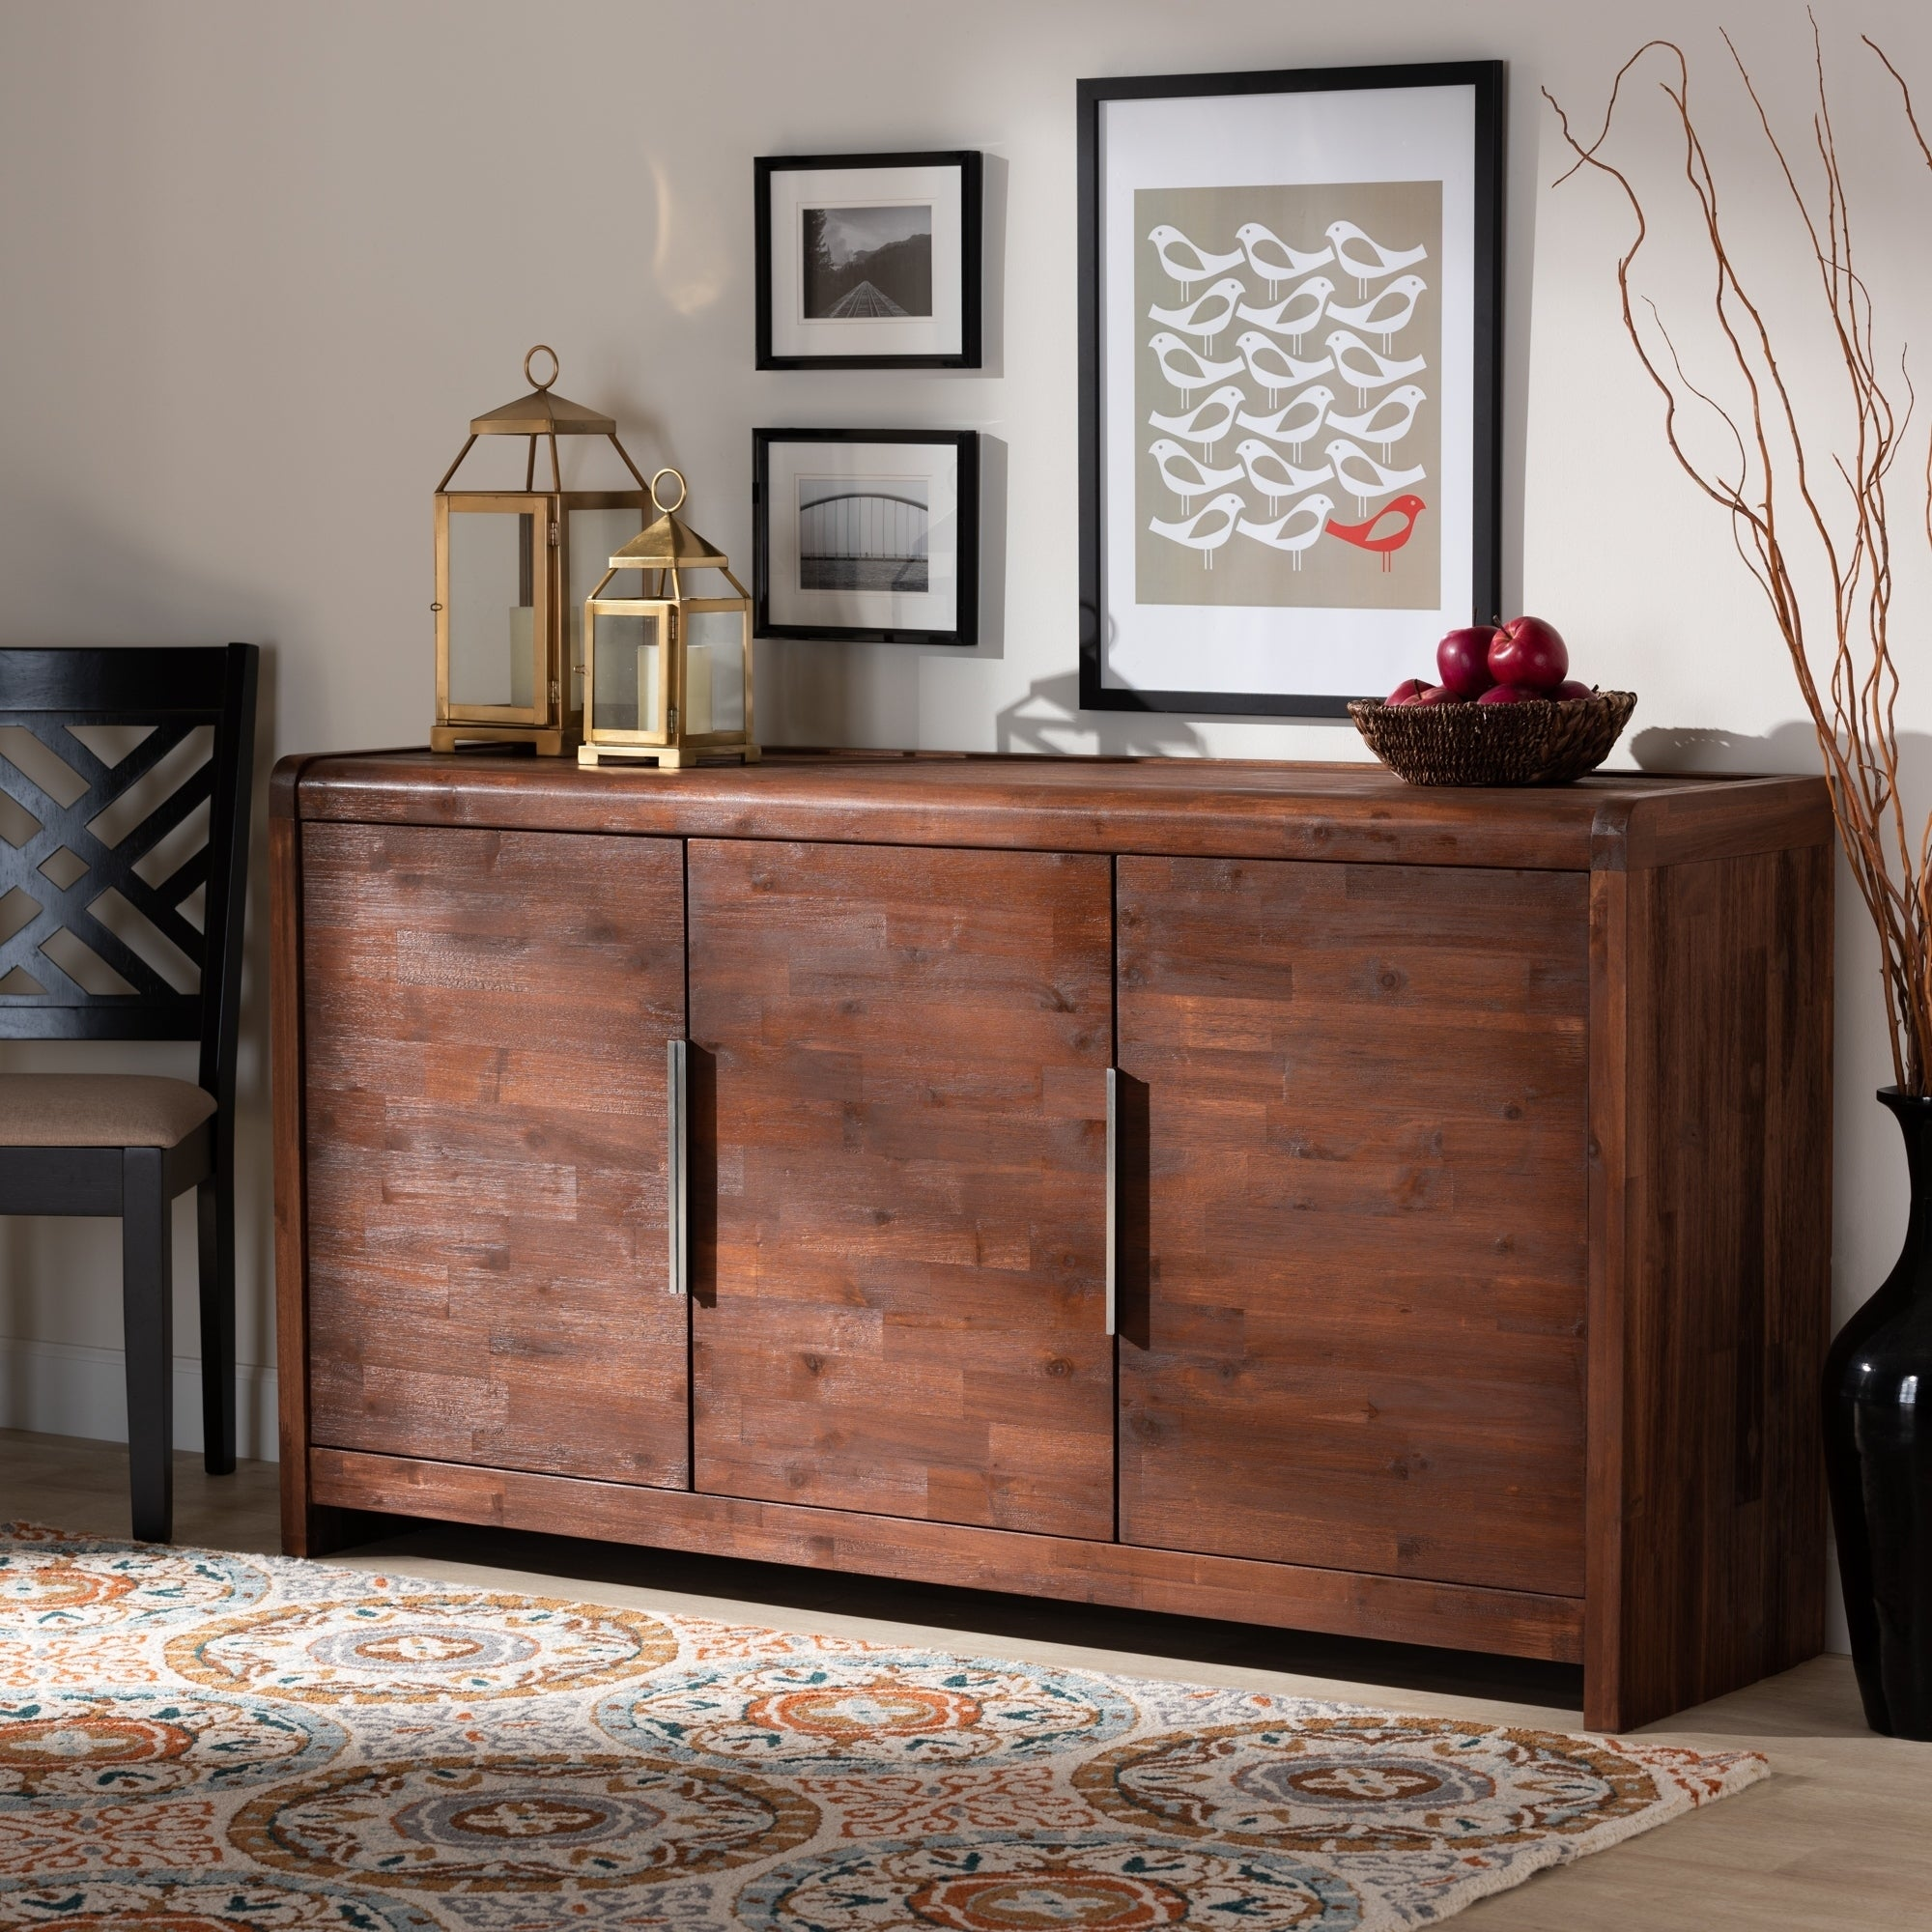 Shop Black Friday Deals On Torres Modern And Contemporary Brown Oak Finished Sideboard Buffet Overstock 30116567